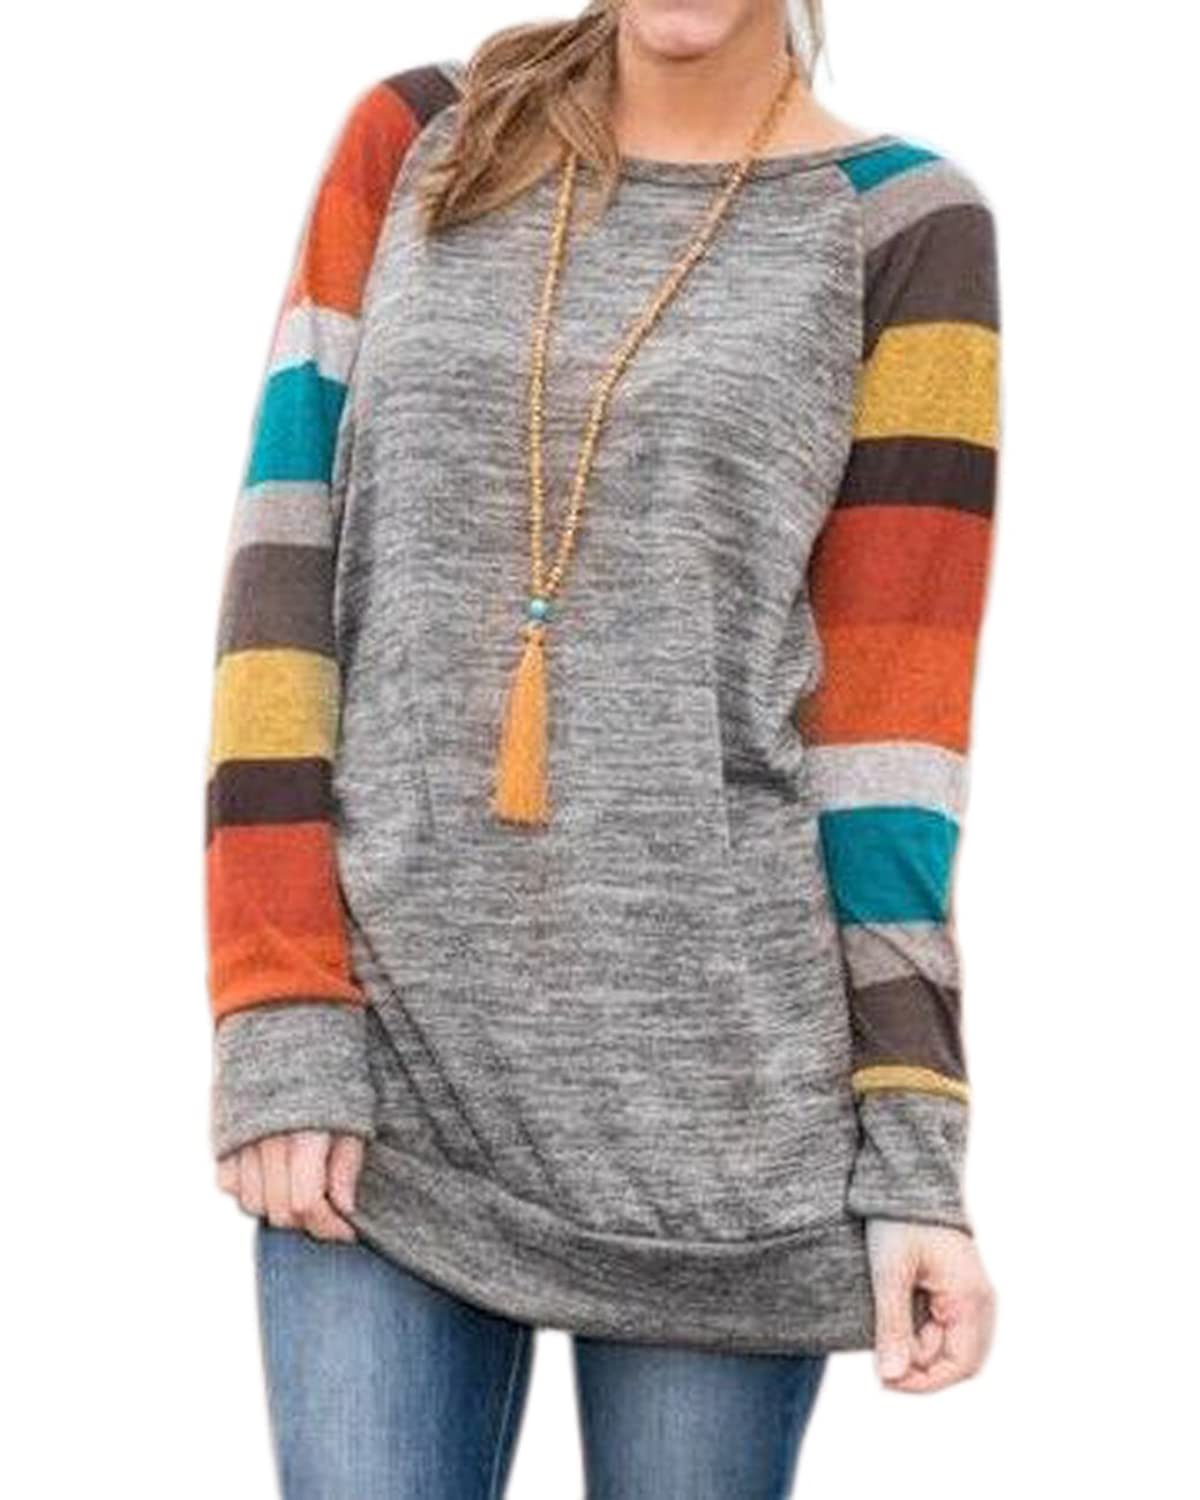 8452059db6b29 Features: Crew neck,long sleeve,long length. Tunics sweatshirt to wear with  leggings,boots,casual flat shoes ...